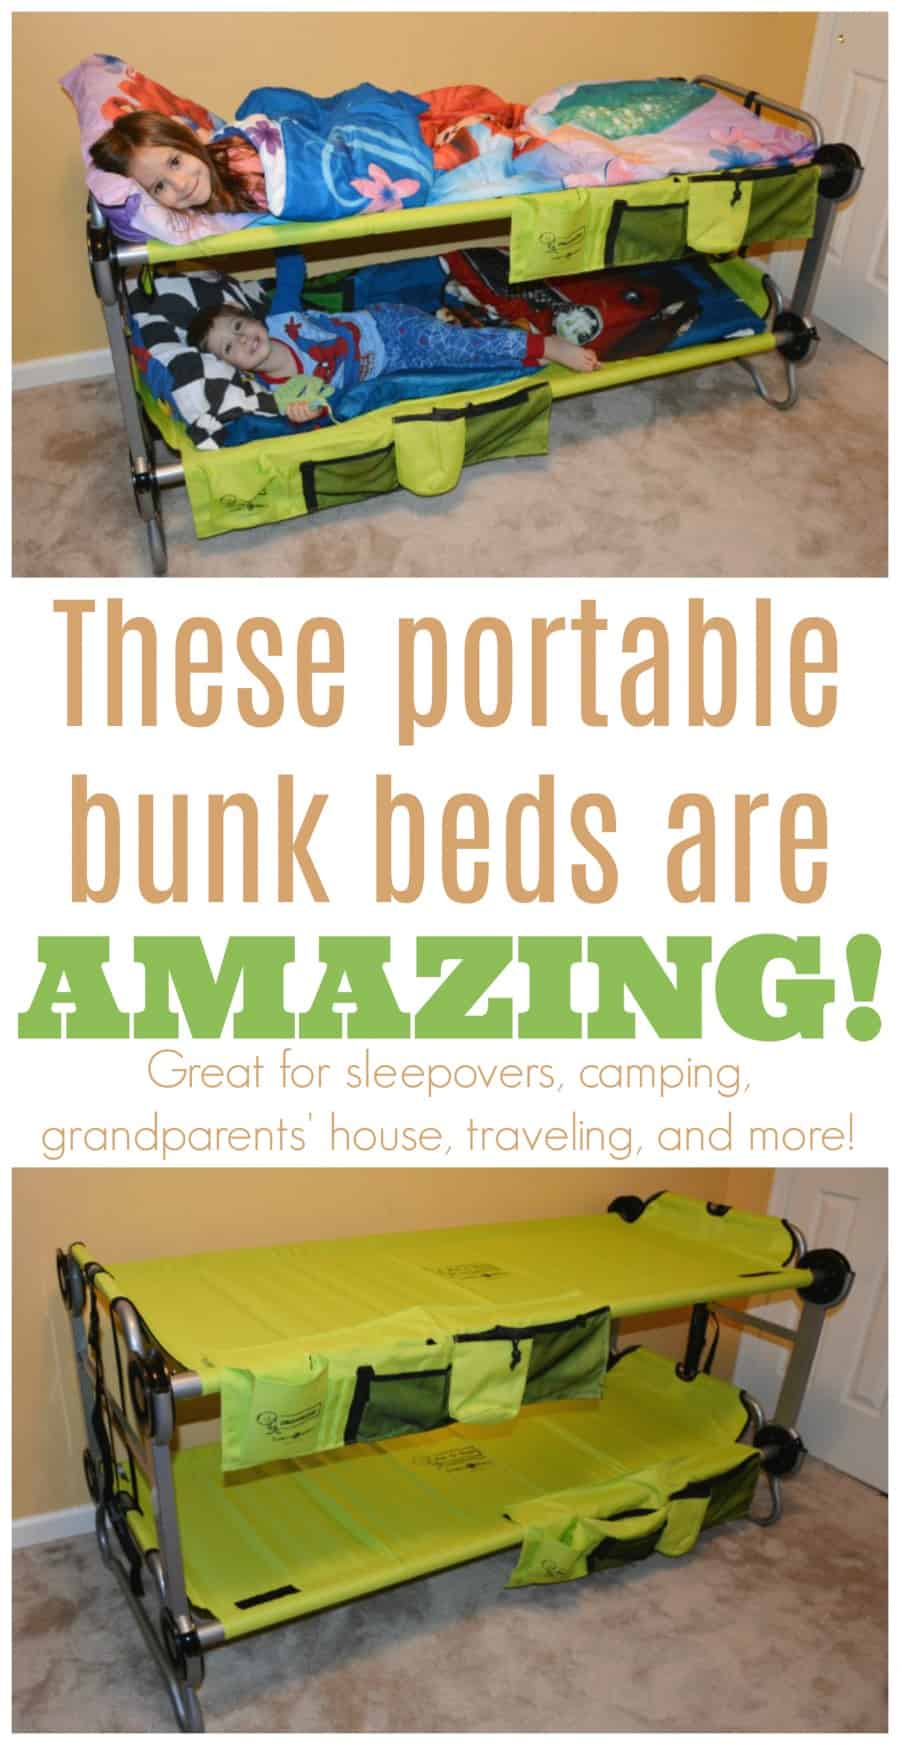 These portable bunk beds are amazing!